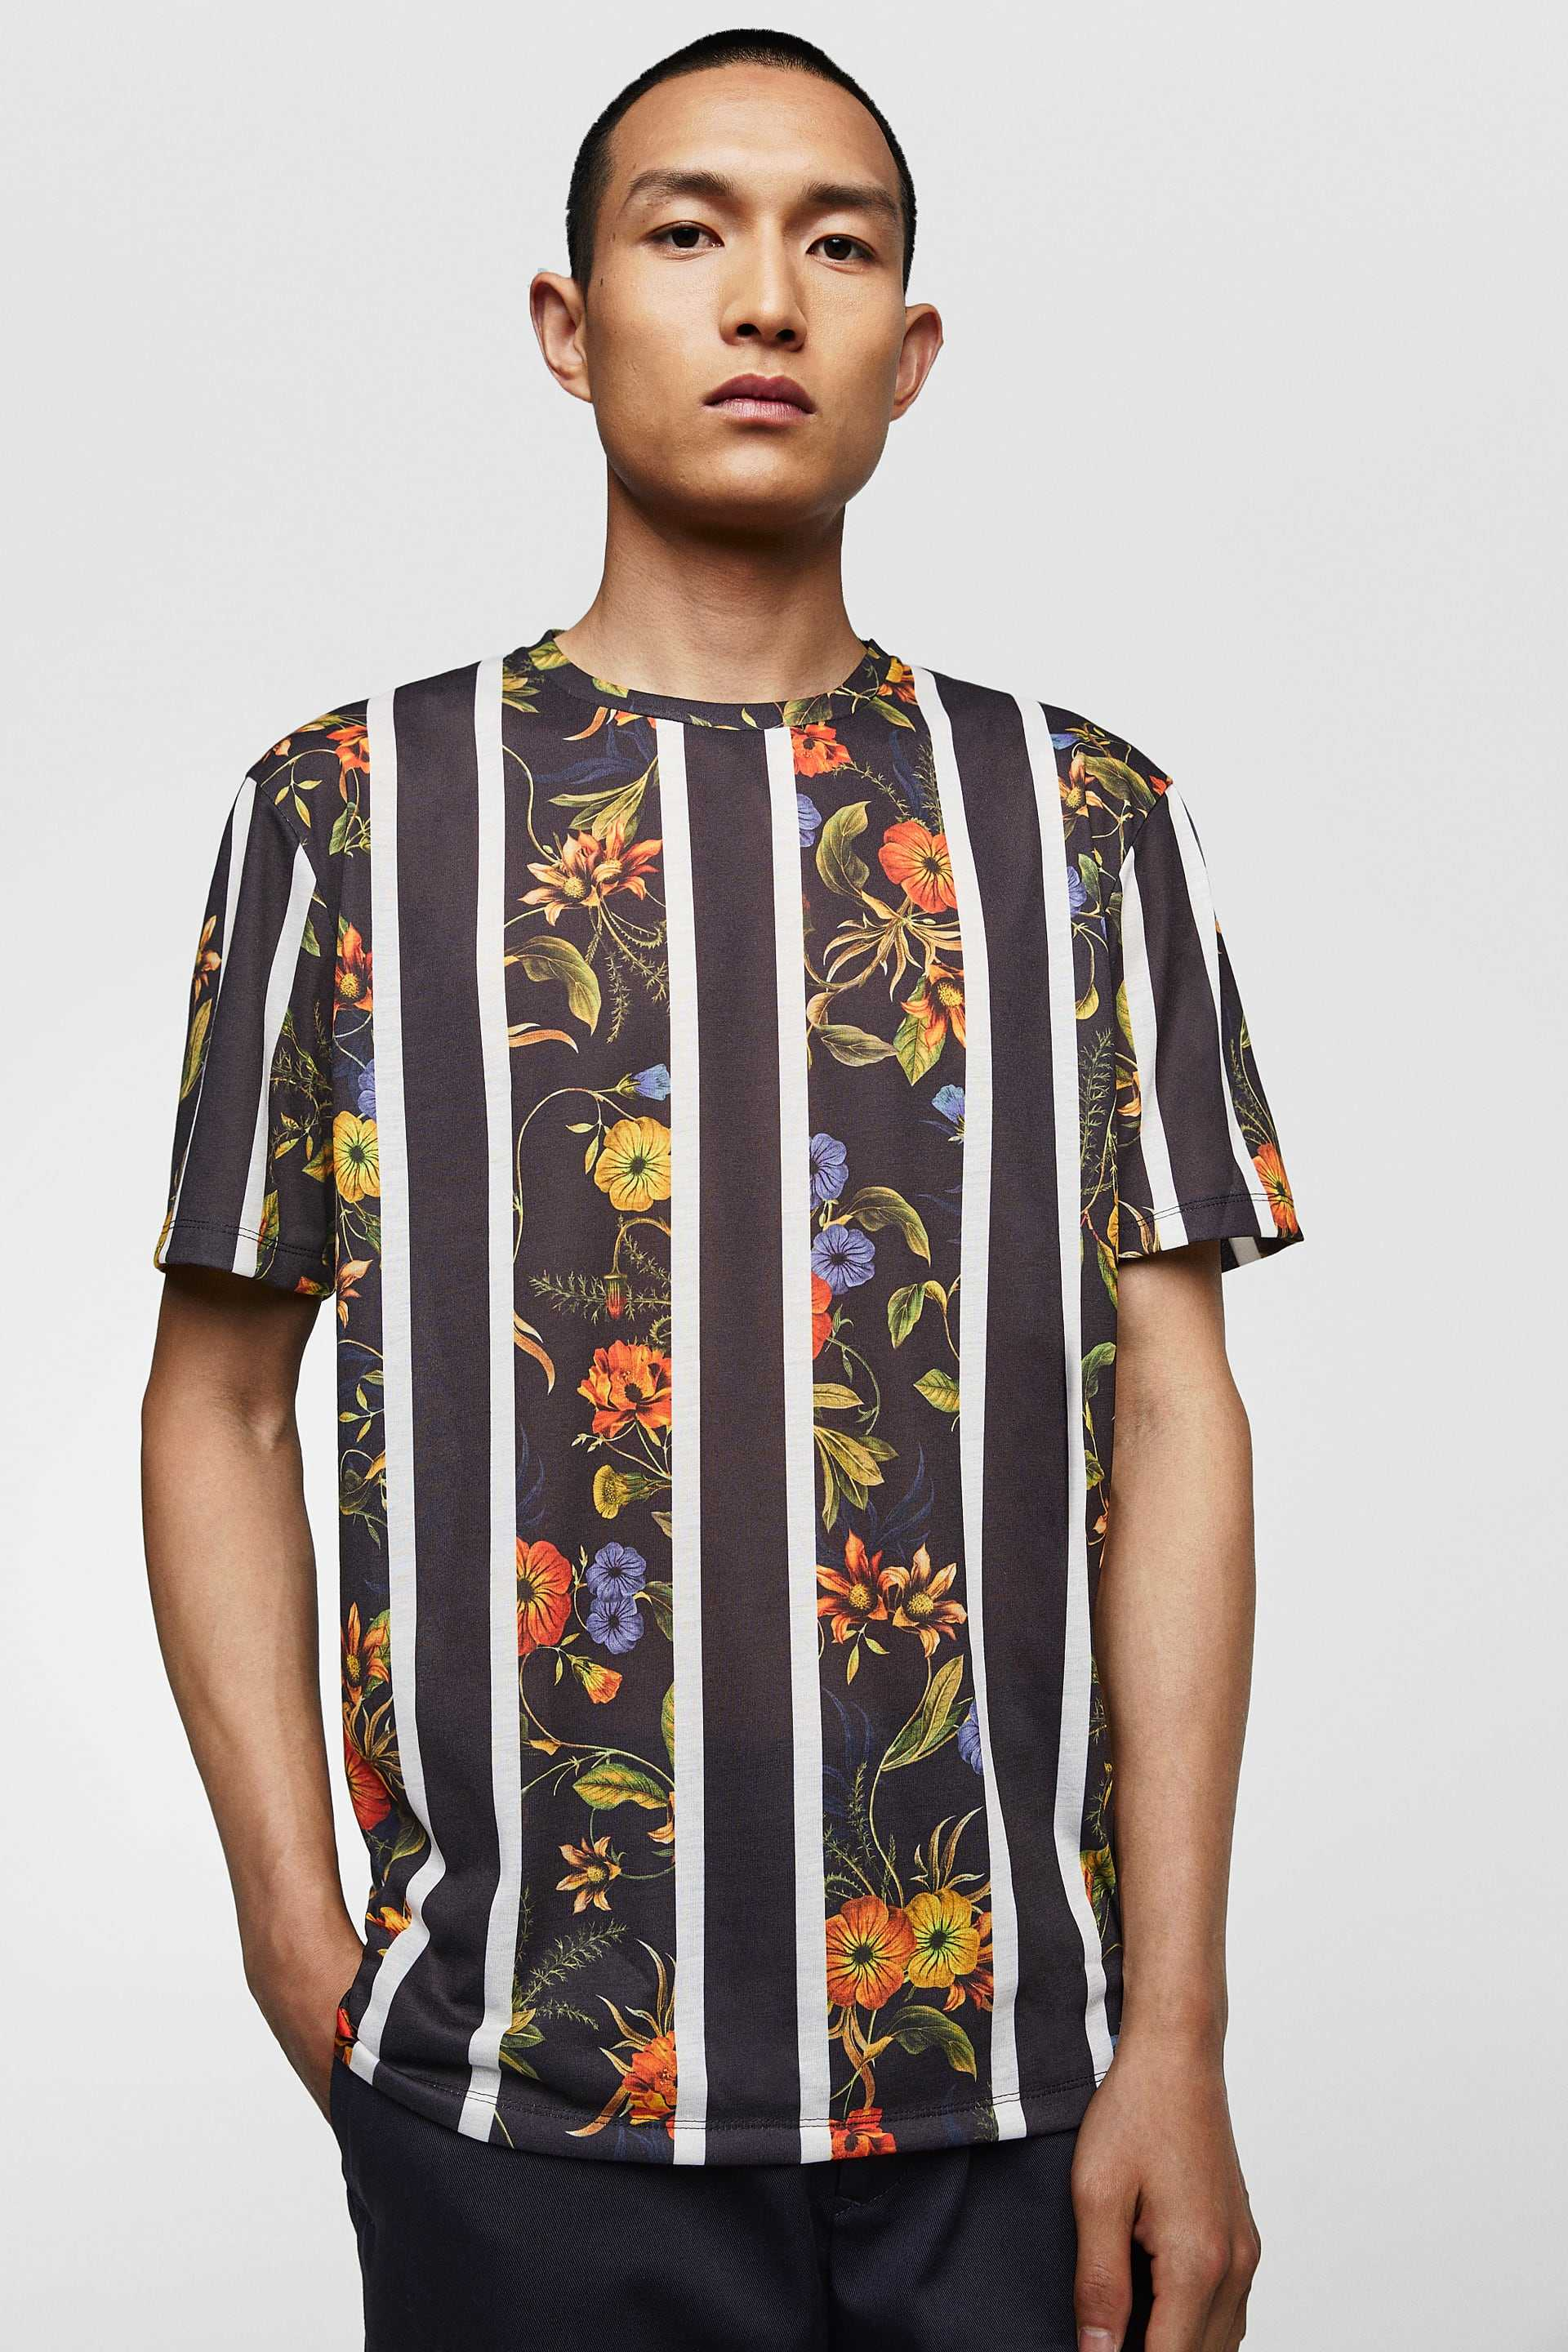 T-shirt trends 2018, Zara, Flowers